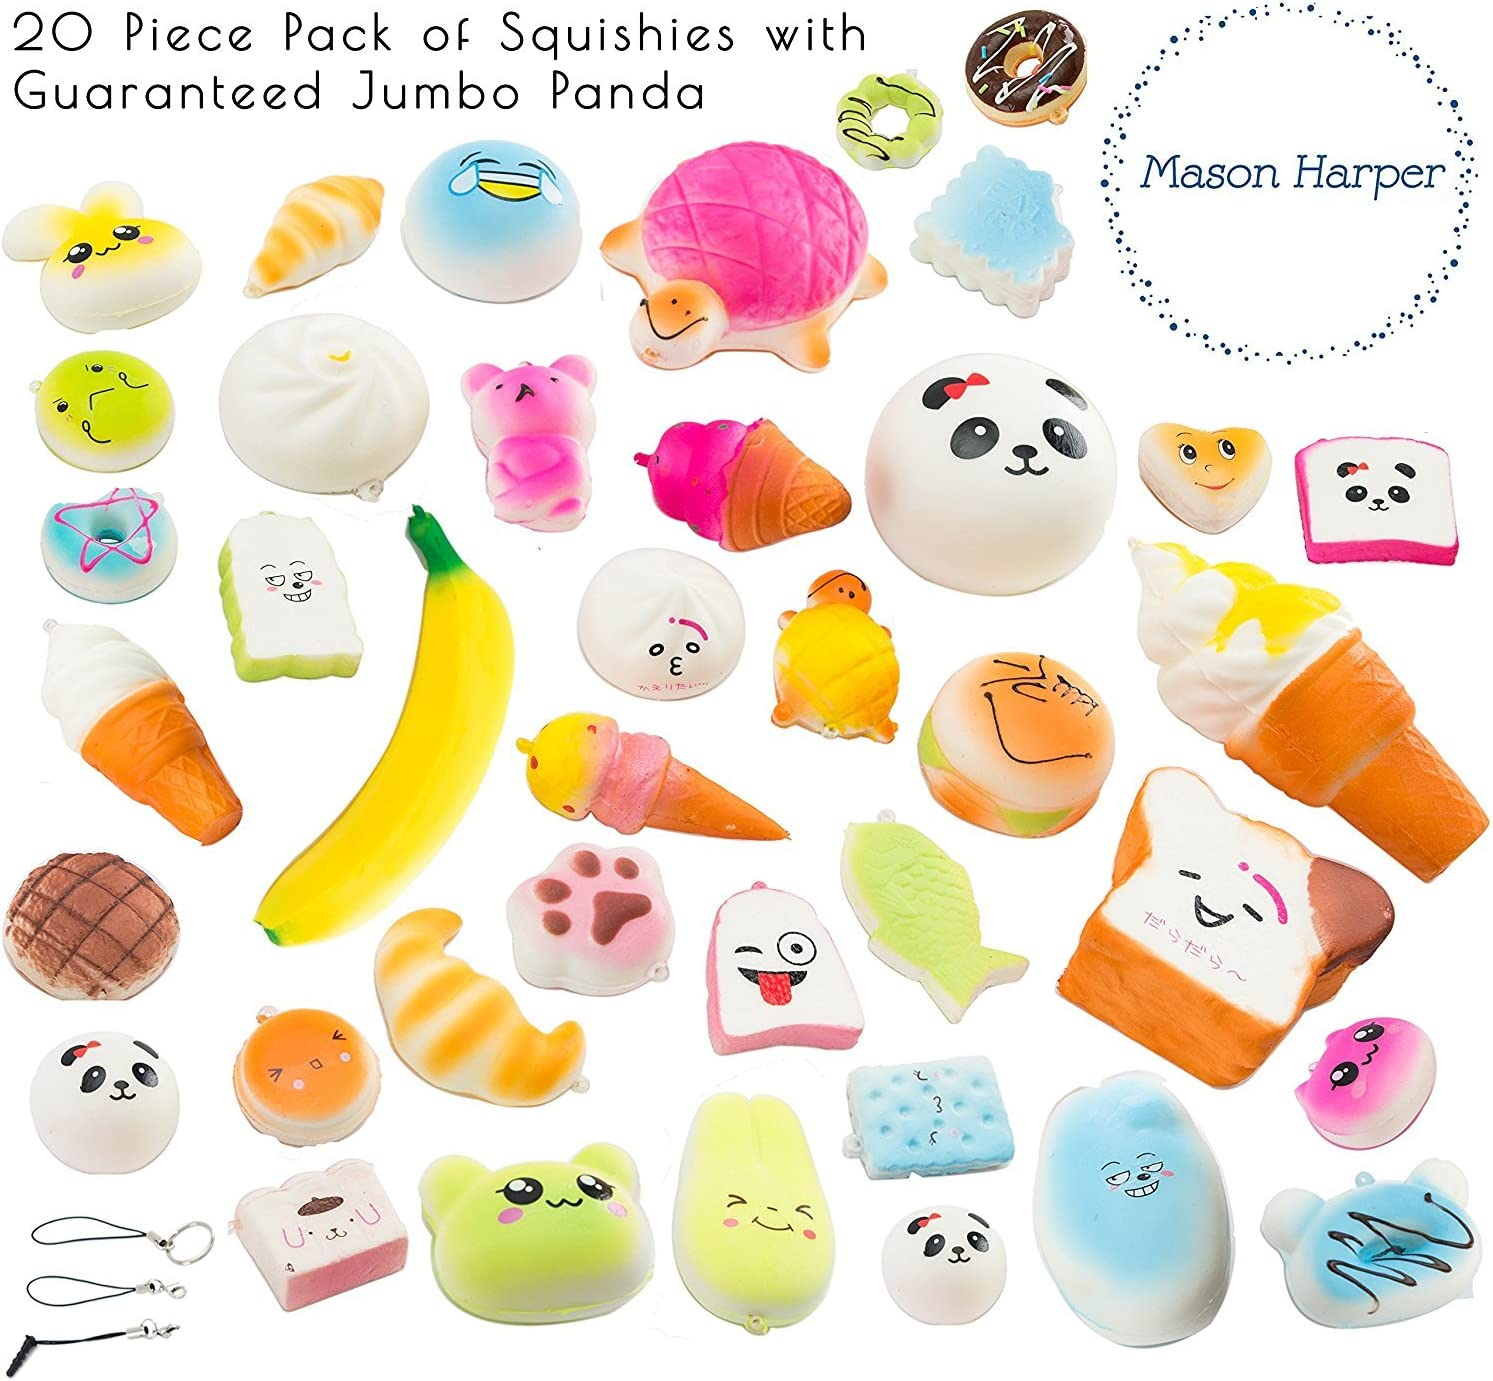 MasonHarper Random 20 Pack of Slow Rising Kawaii Squishies (Jumbo, Medium & Mini Soft Squishy Toys), Variety of Panda, Buns & Cake Squishies, Straps for iPhone & Android Headphone-Jack, Stress Relief